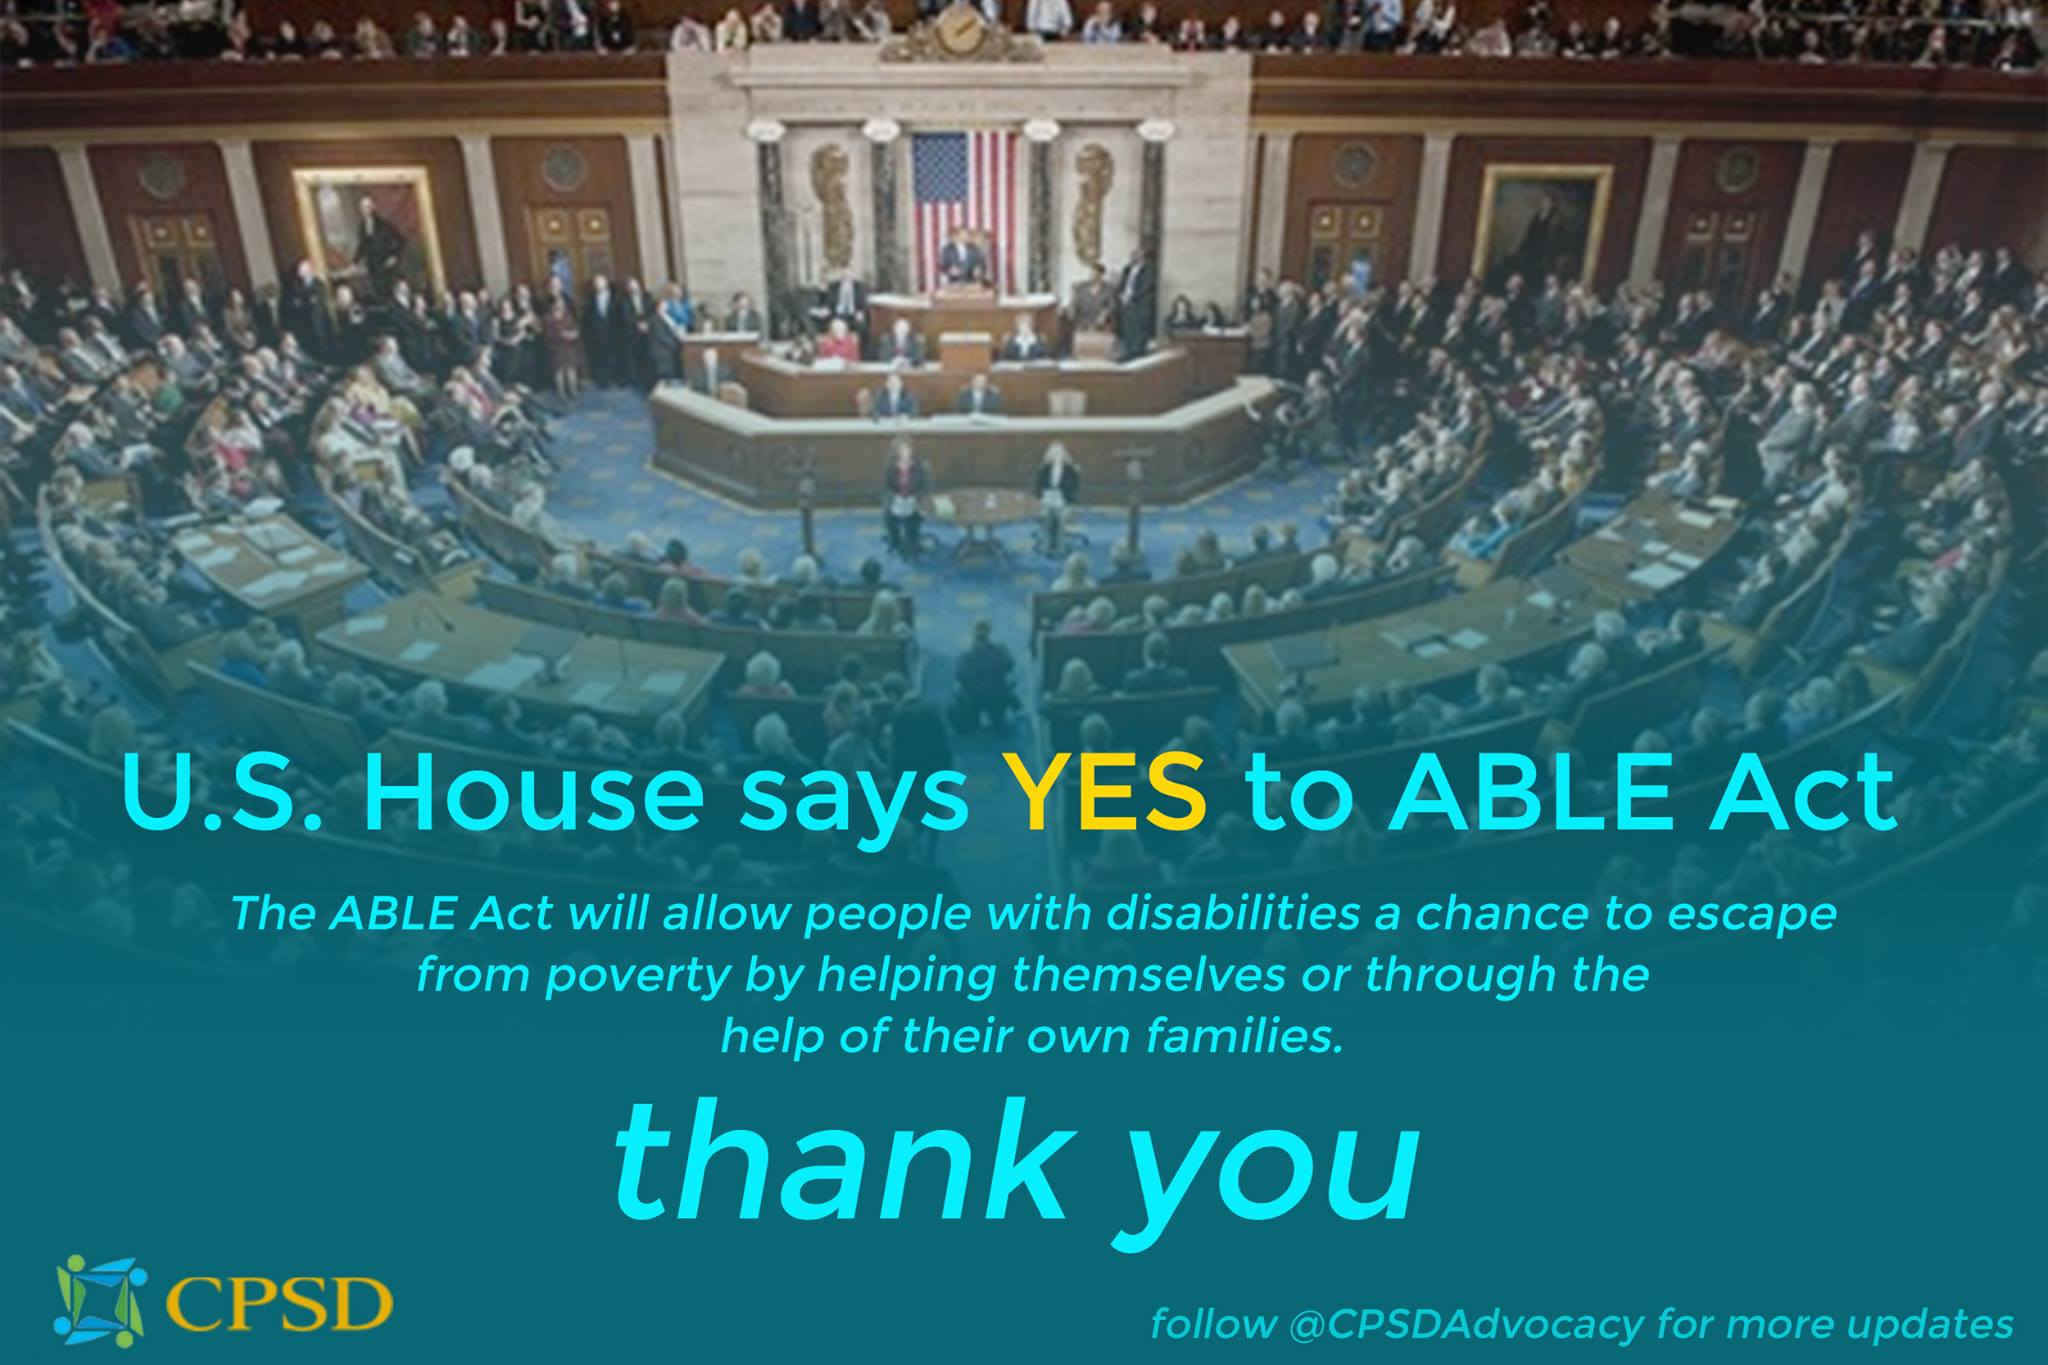 U.S. House Approves ABLE Act 404-17